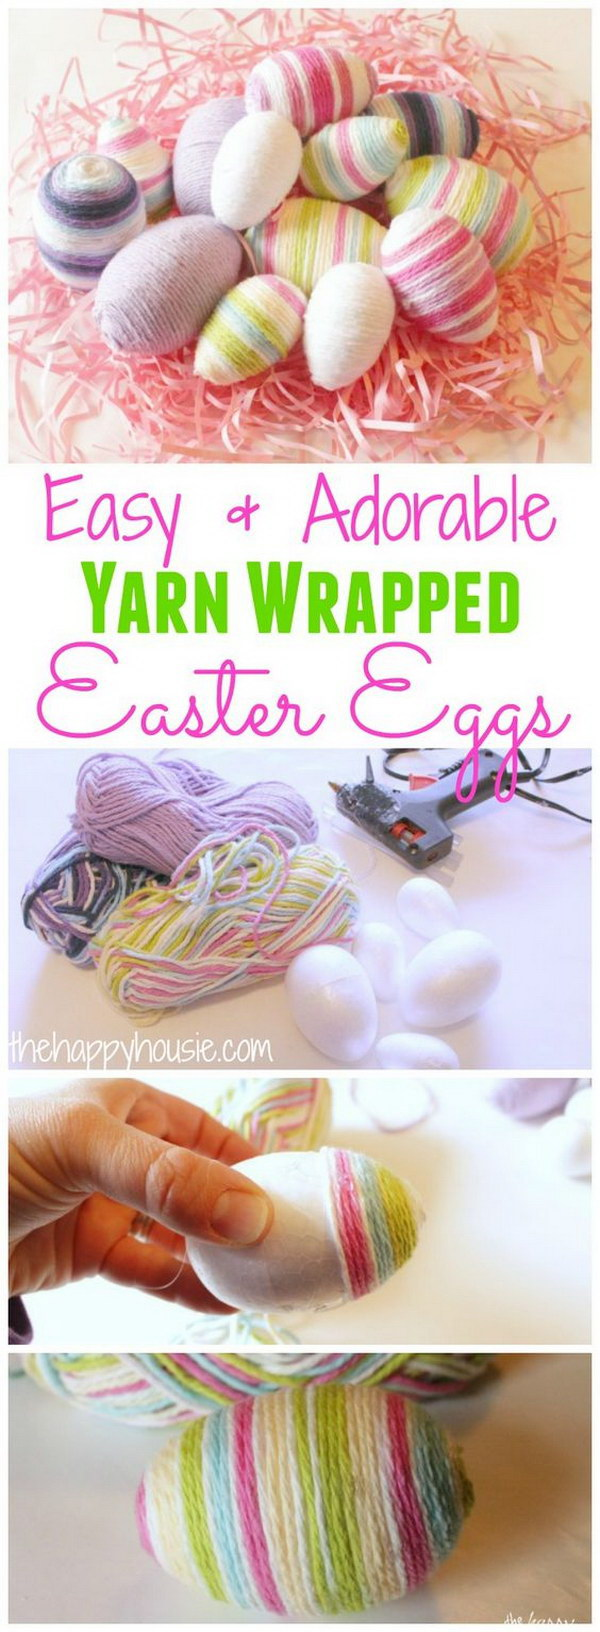 19 Yarn Wrapped Easter Eggs